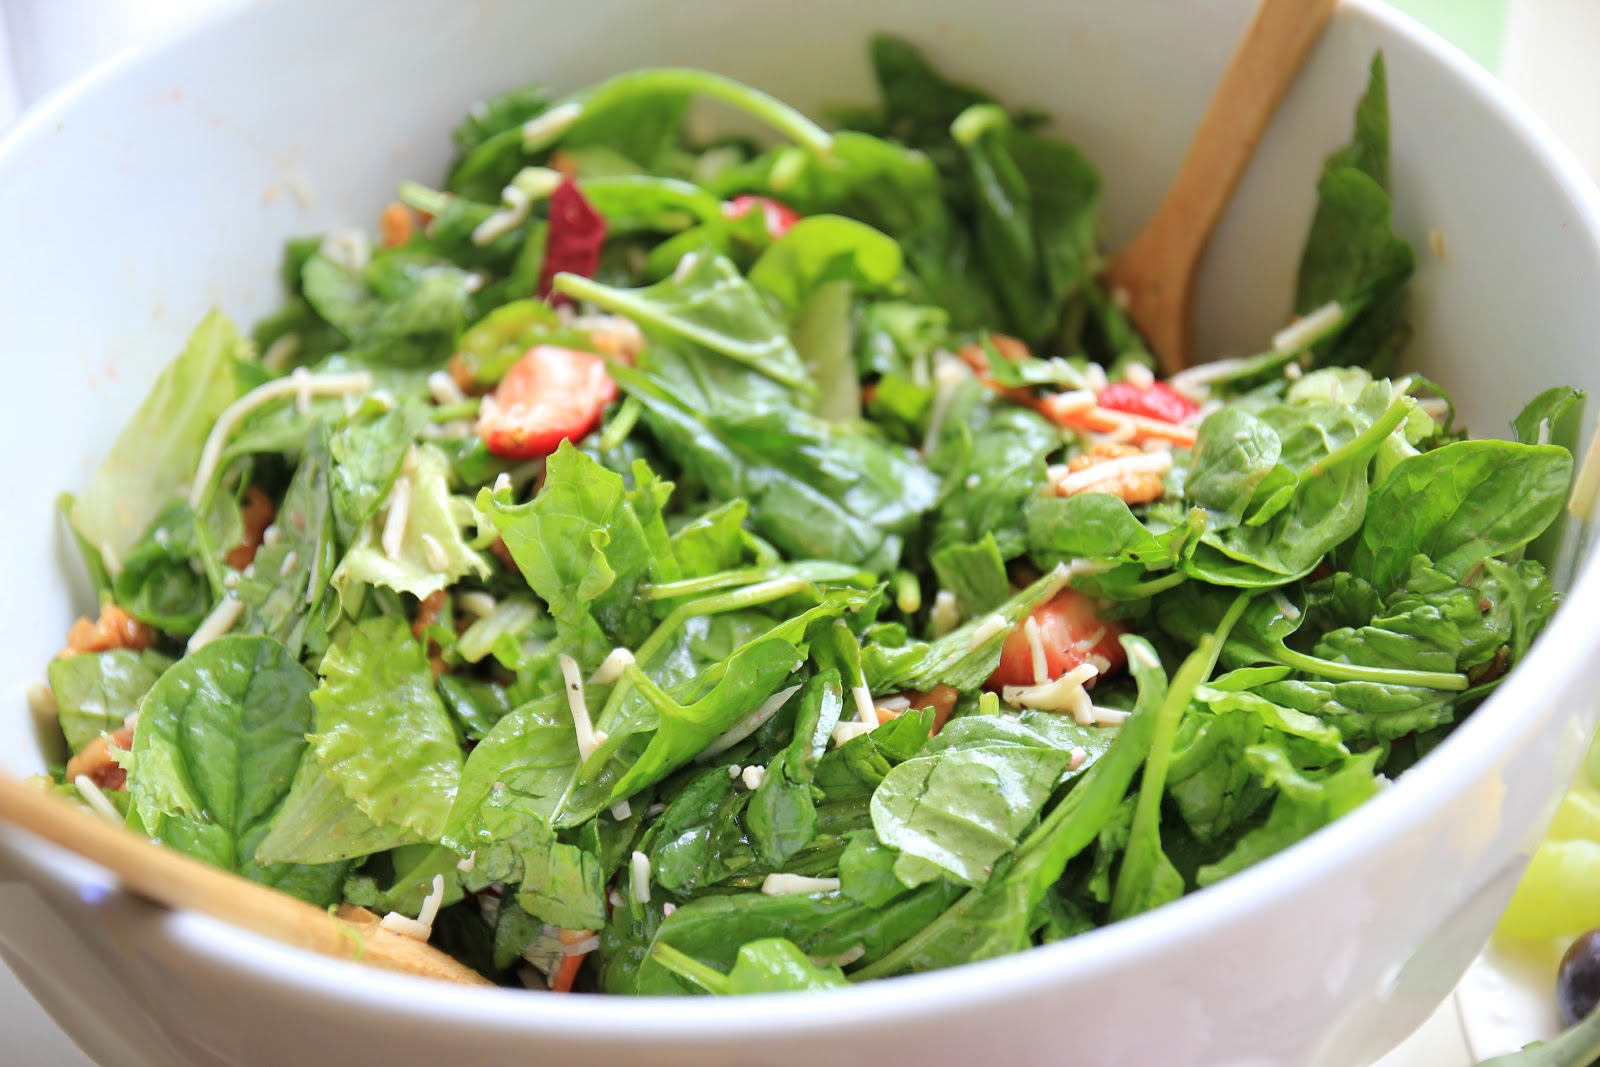 This is the recipe for the Spinach & Strawberry Salad that we made for ...